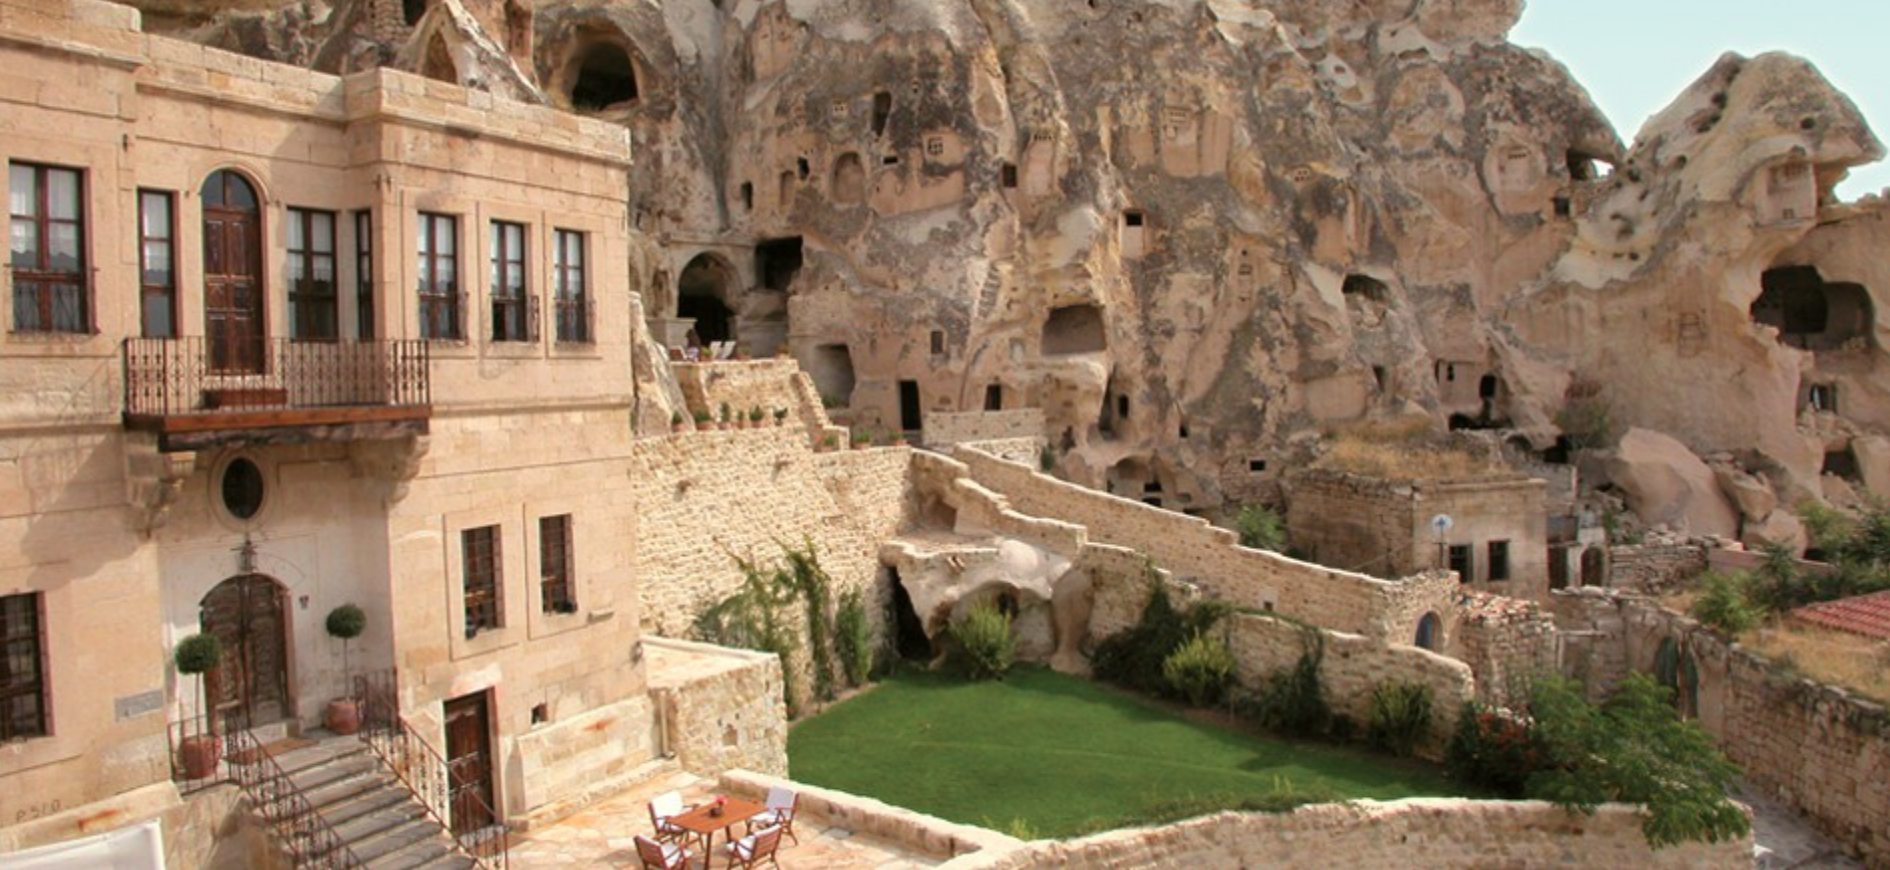 Cappadocia is famous for carved homes, churches, monasteries--and now the Yunak Evleri hotel.